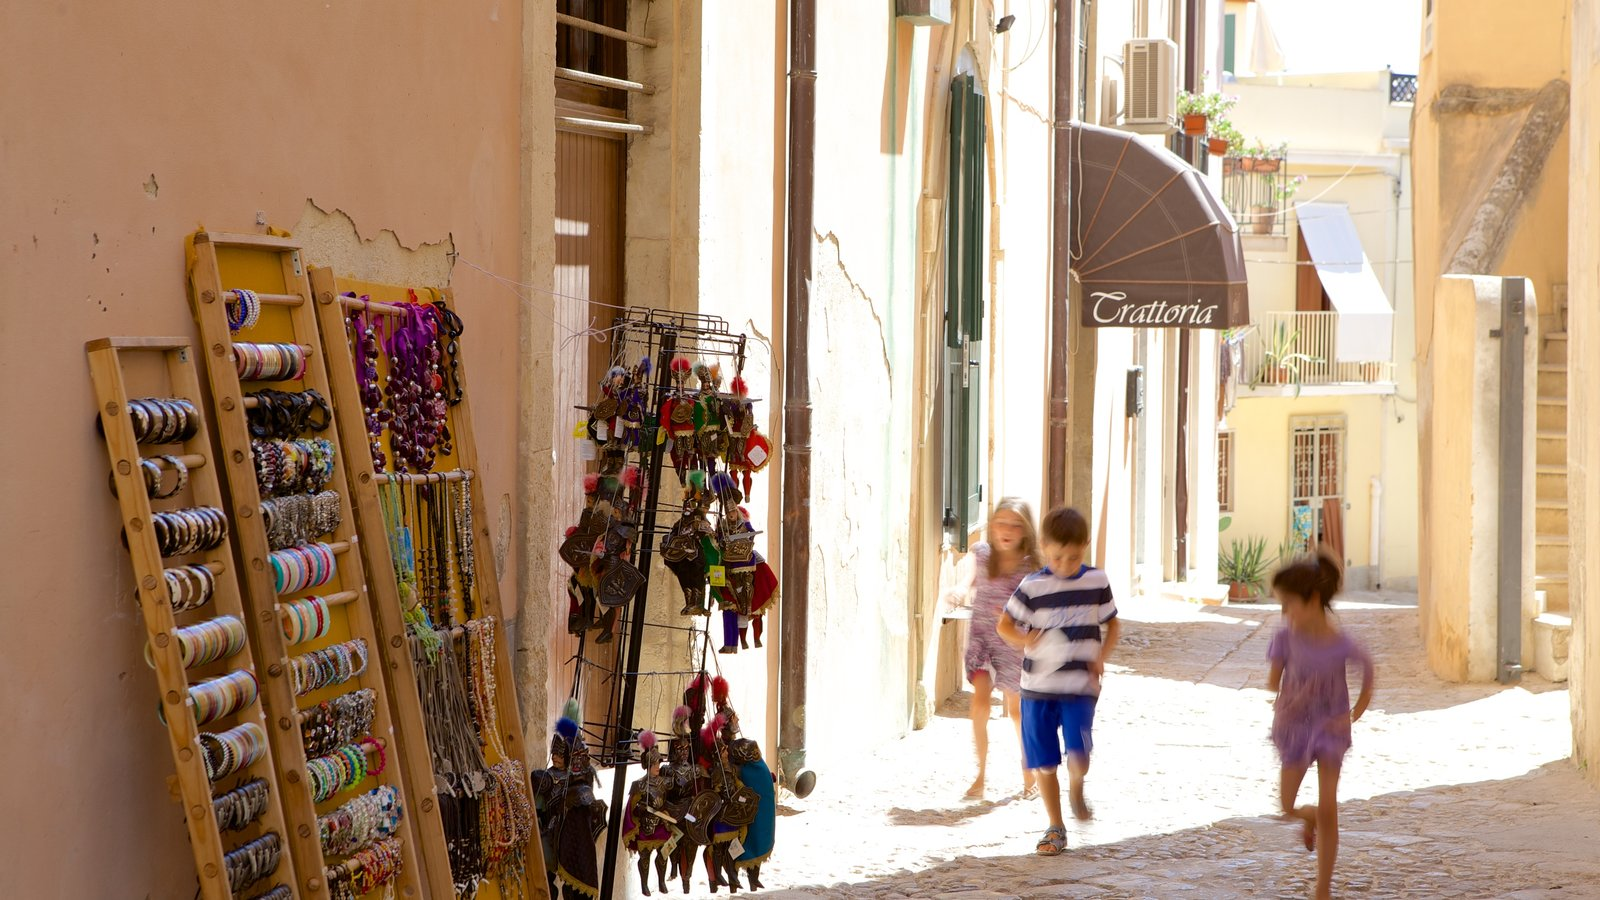 Noto featuring street scenes as well as children